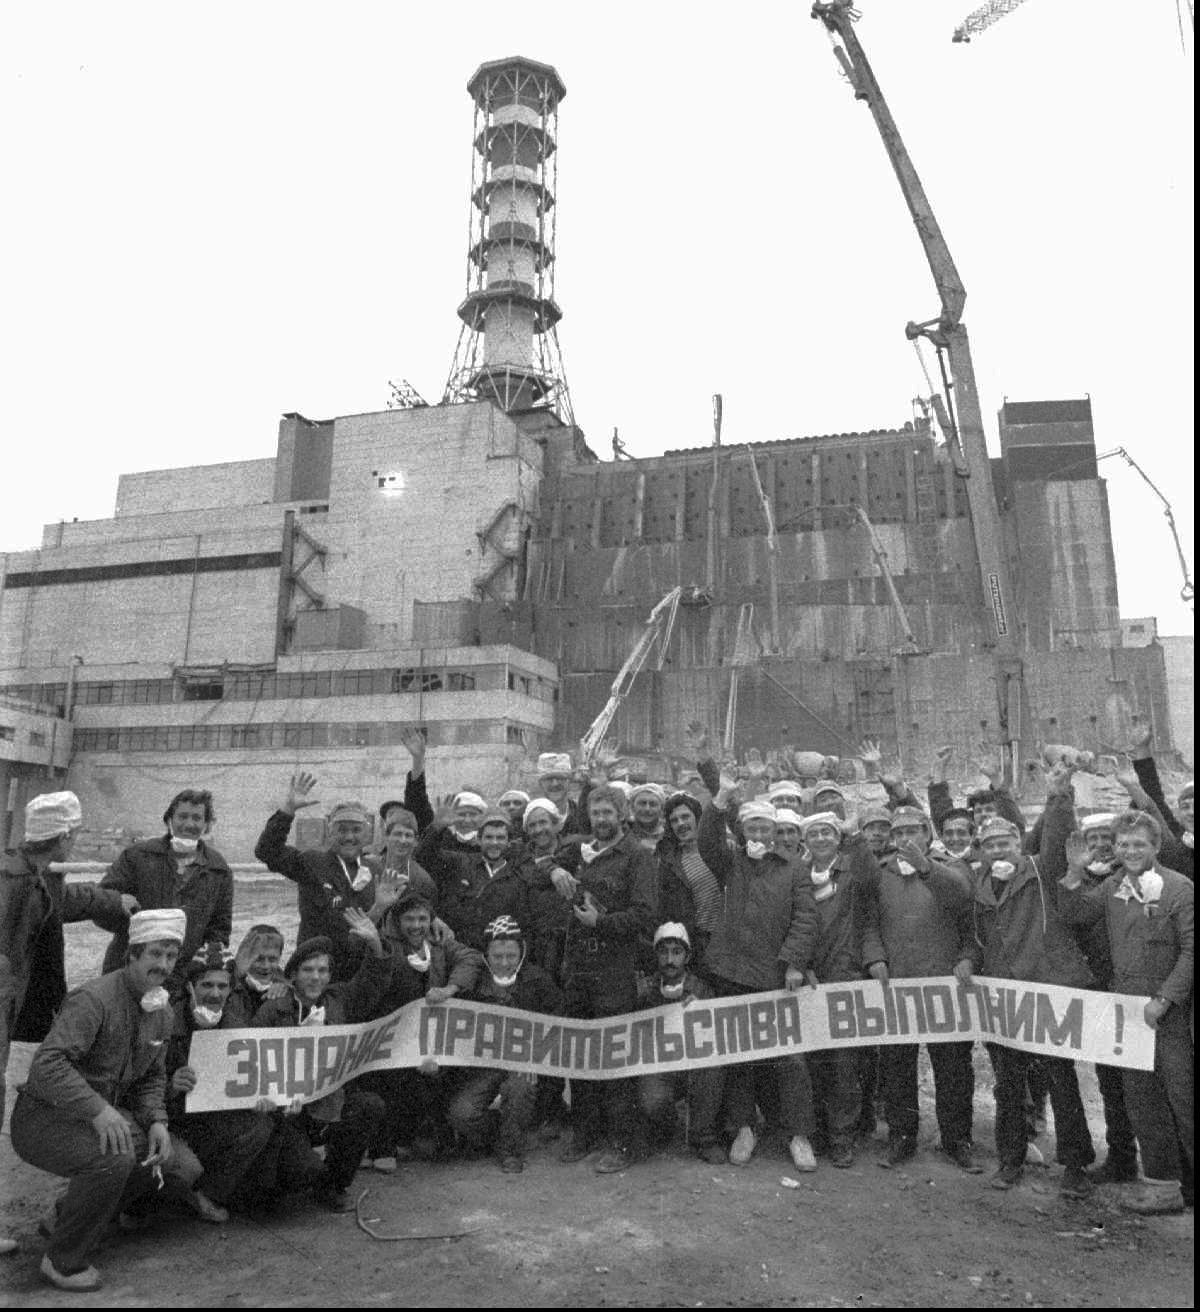 """Workers who constructed the base for a cement sarcophagus to cover Chernobyl's exploded Reactor 4 pose, in front of the still-exposed destroyed reactor building, with a poster reading: """"We carried out the mission ordered by the government"""". (AP Photo/ Volodymyr Repik)"""